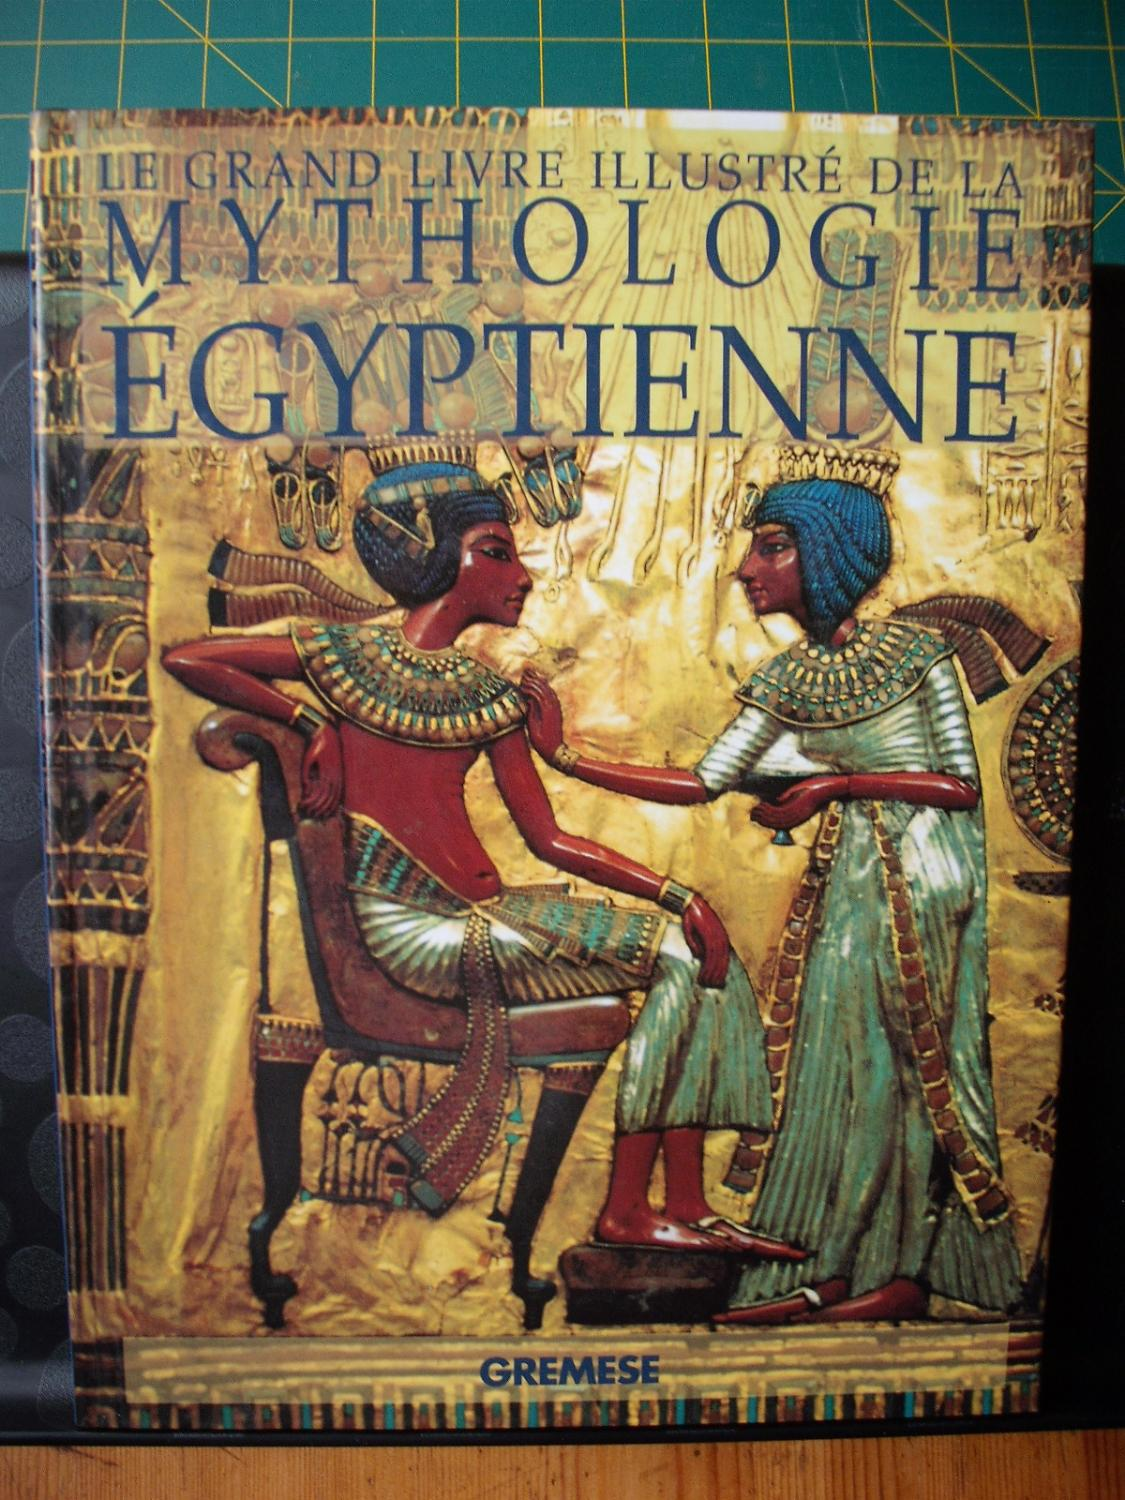 Le Grand Livre Illustre De La Mythologie